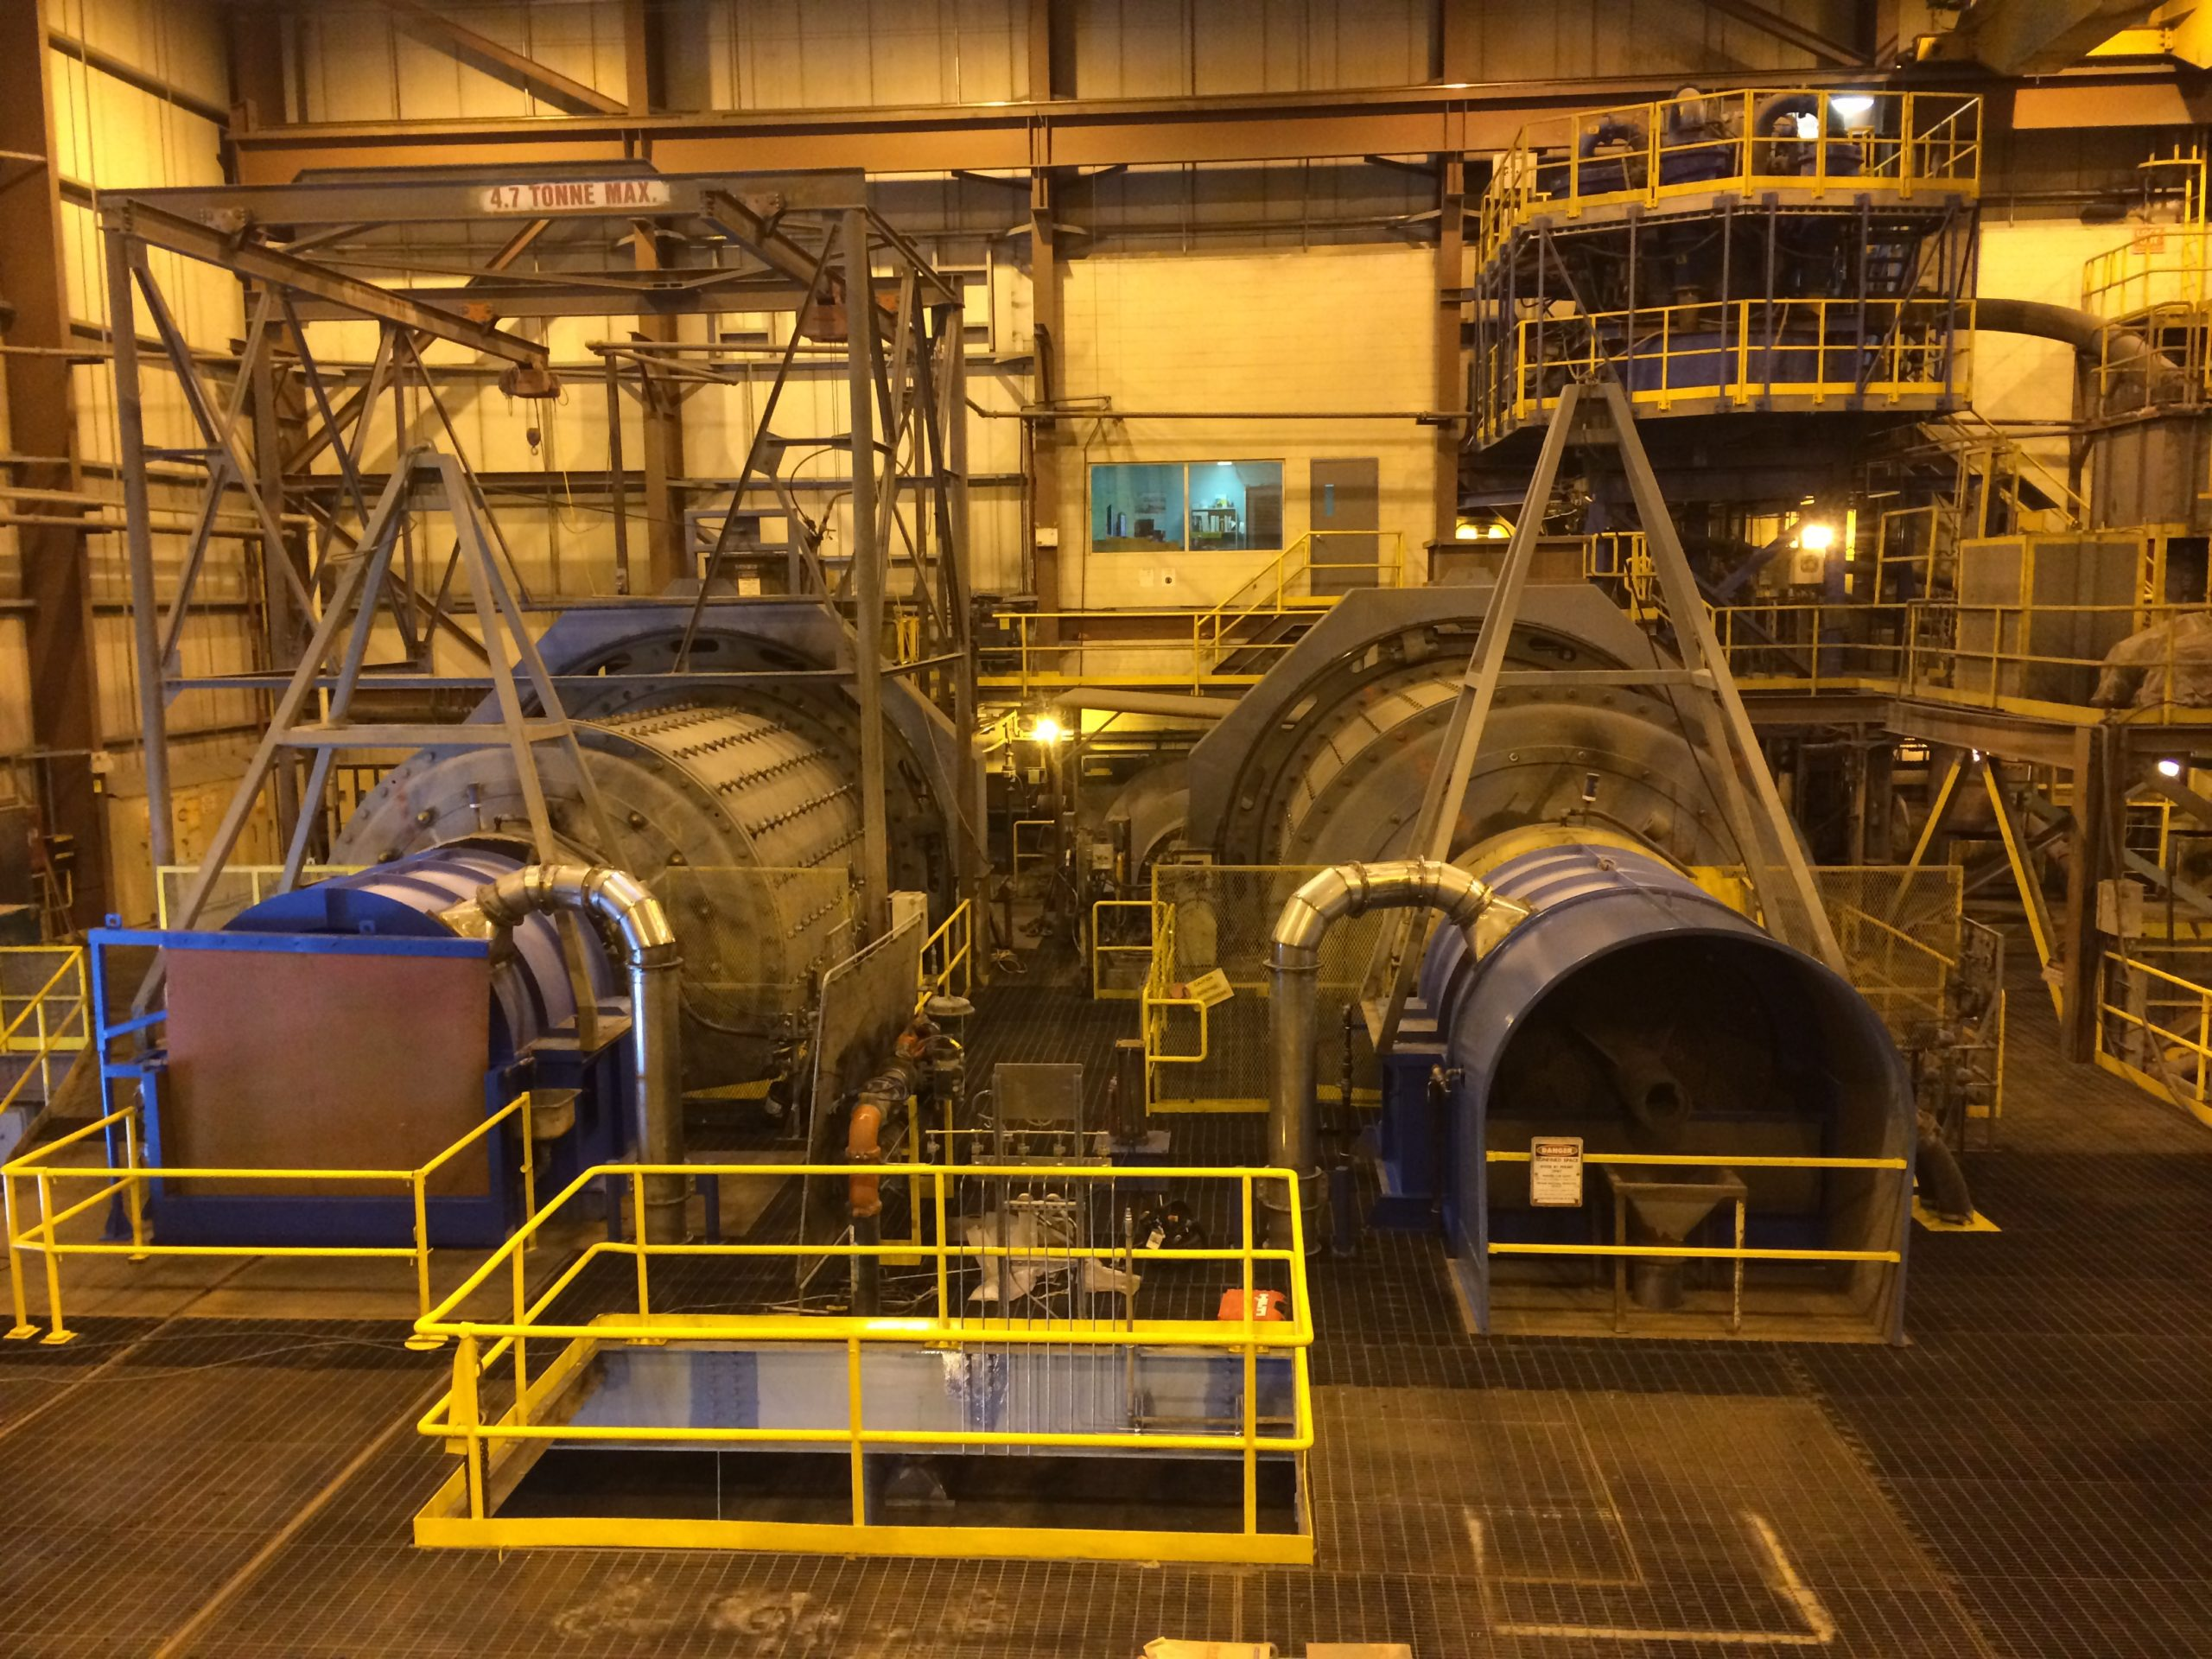 Rector replaced all structural steel, catwalks, guardrails, ducting and provided a complete reline of rod and ball mills at a Newmont operation in Northern Ontario